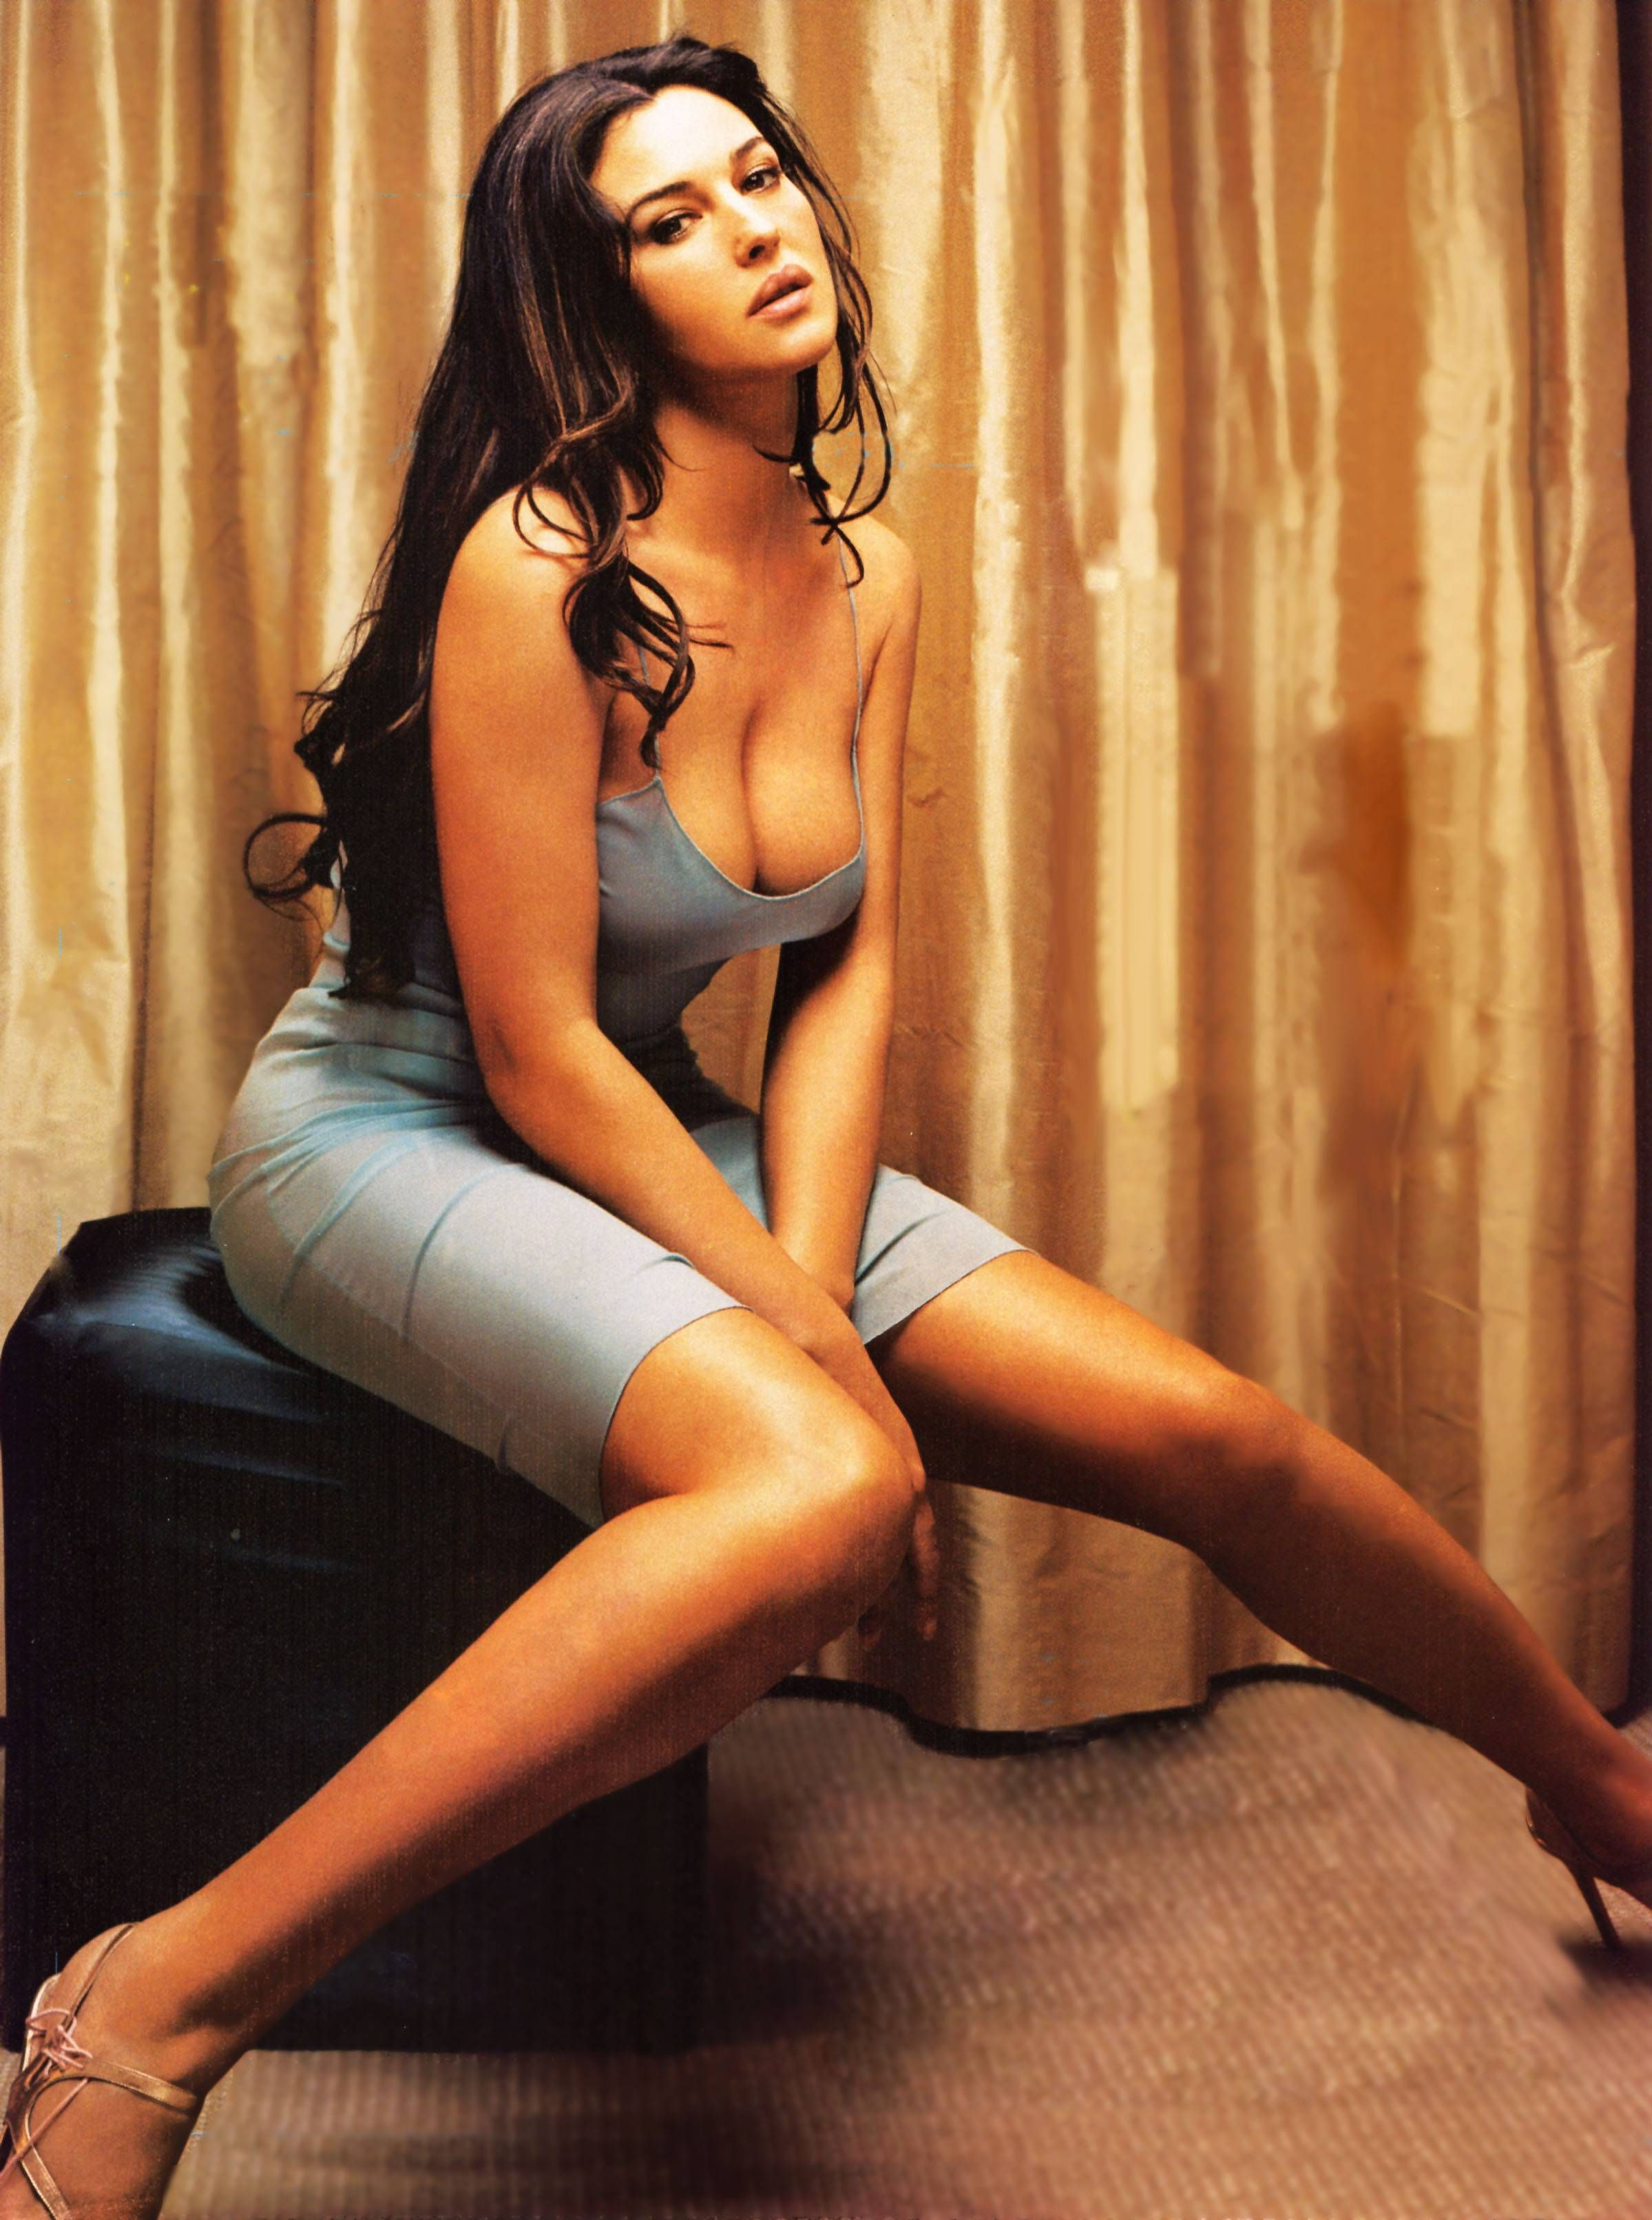 Monica Bellucci Old World Class And Curves